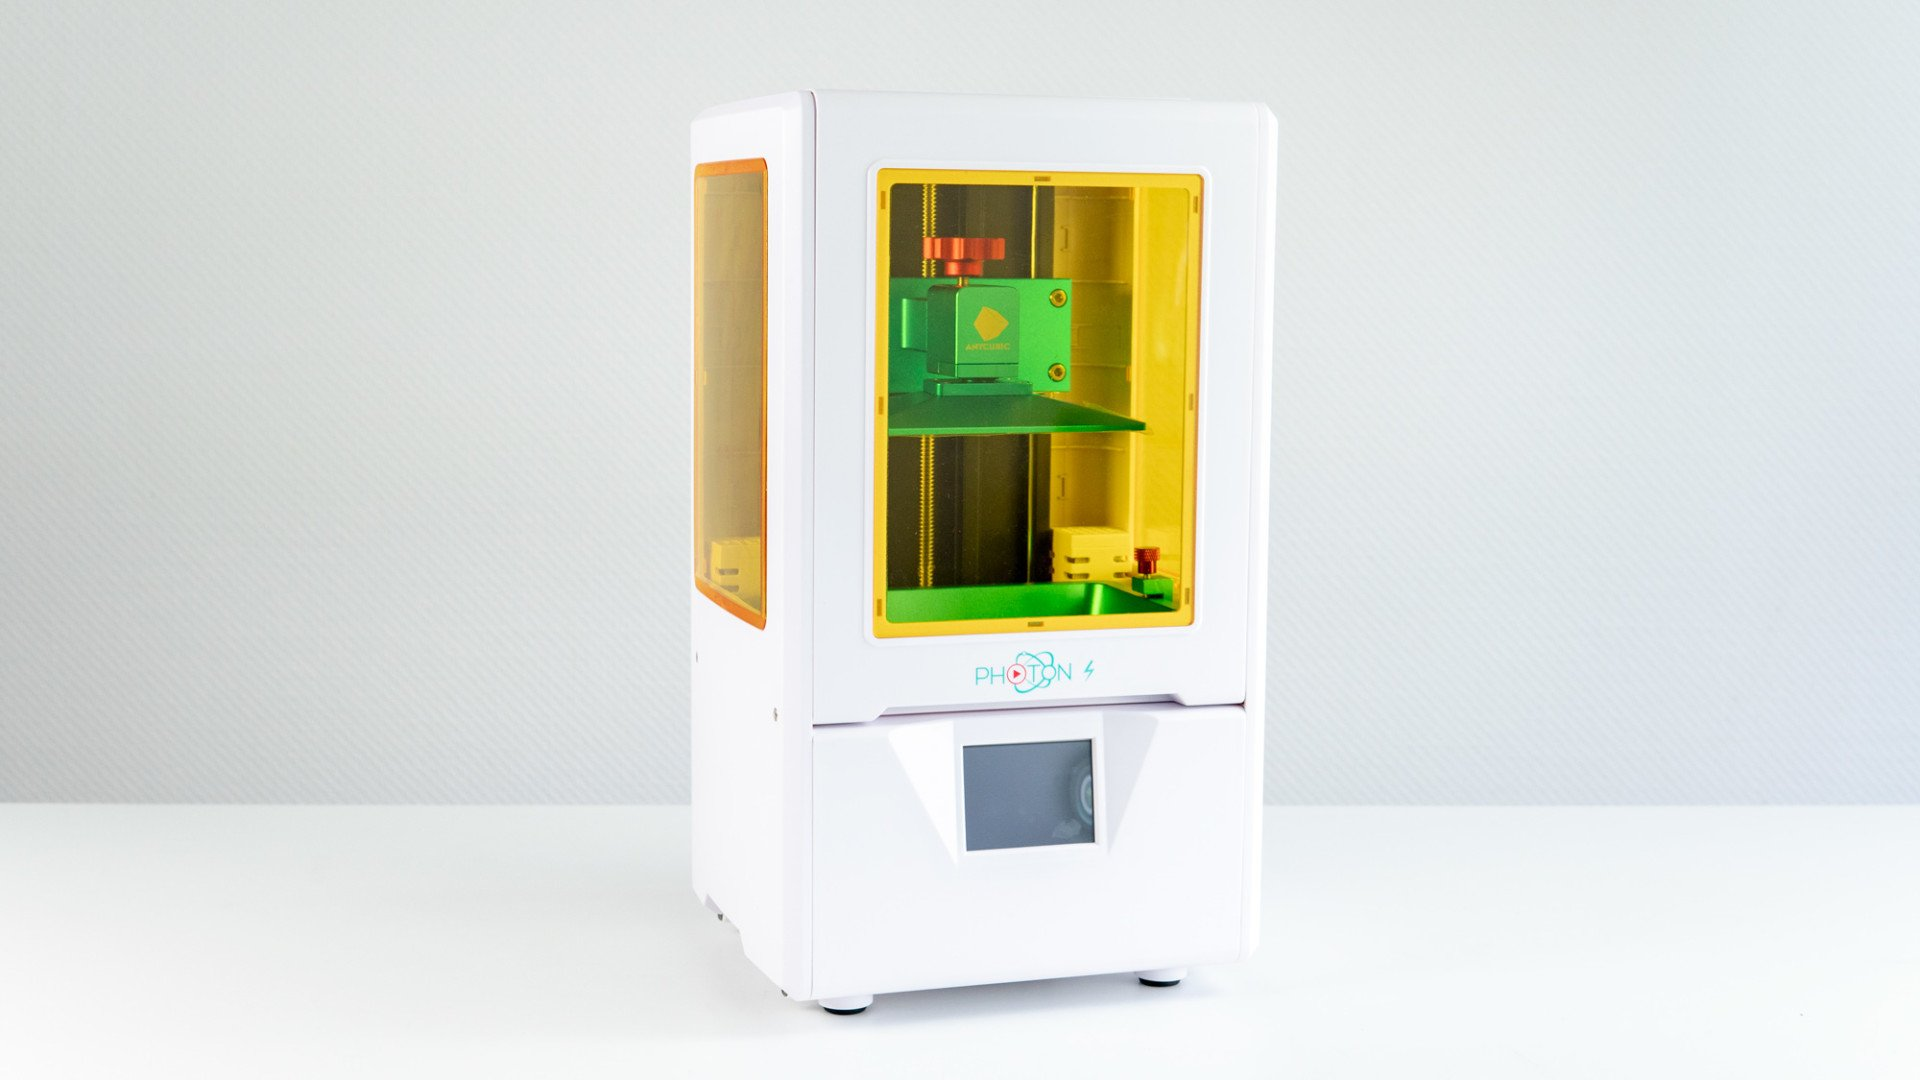 Anycubic Photon S Review: The Better Photon | All3DP